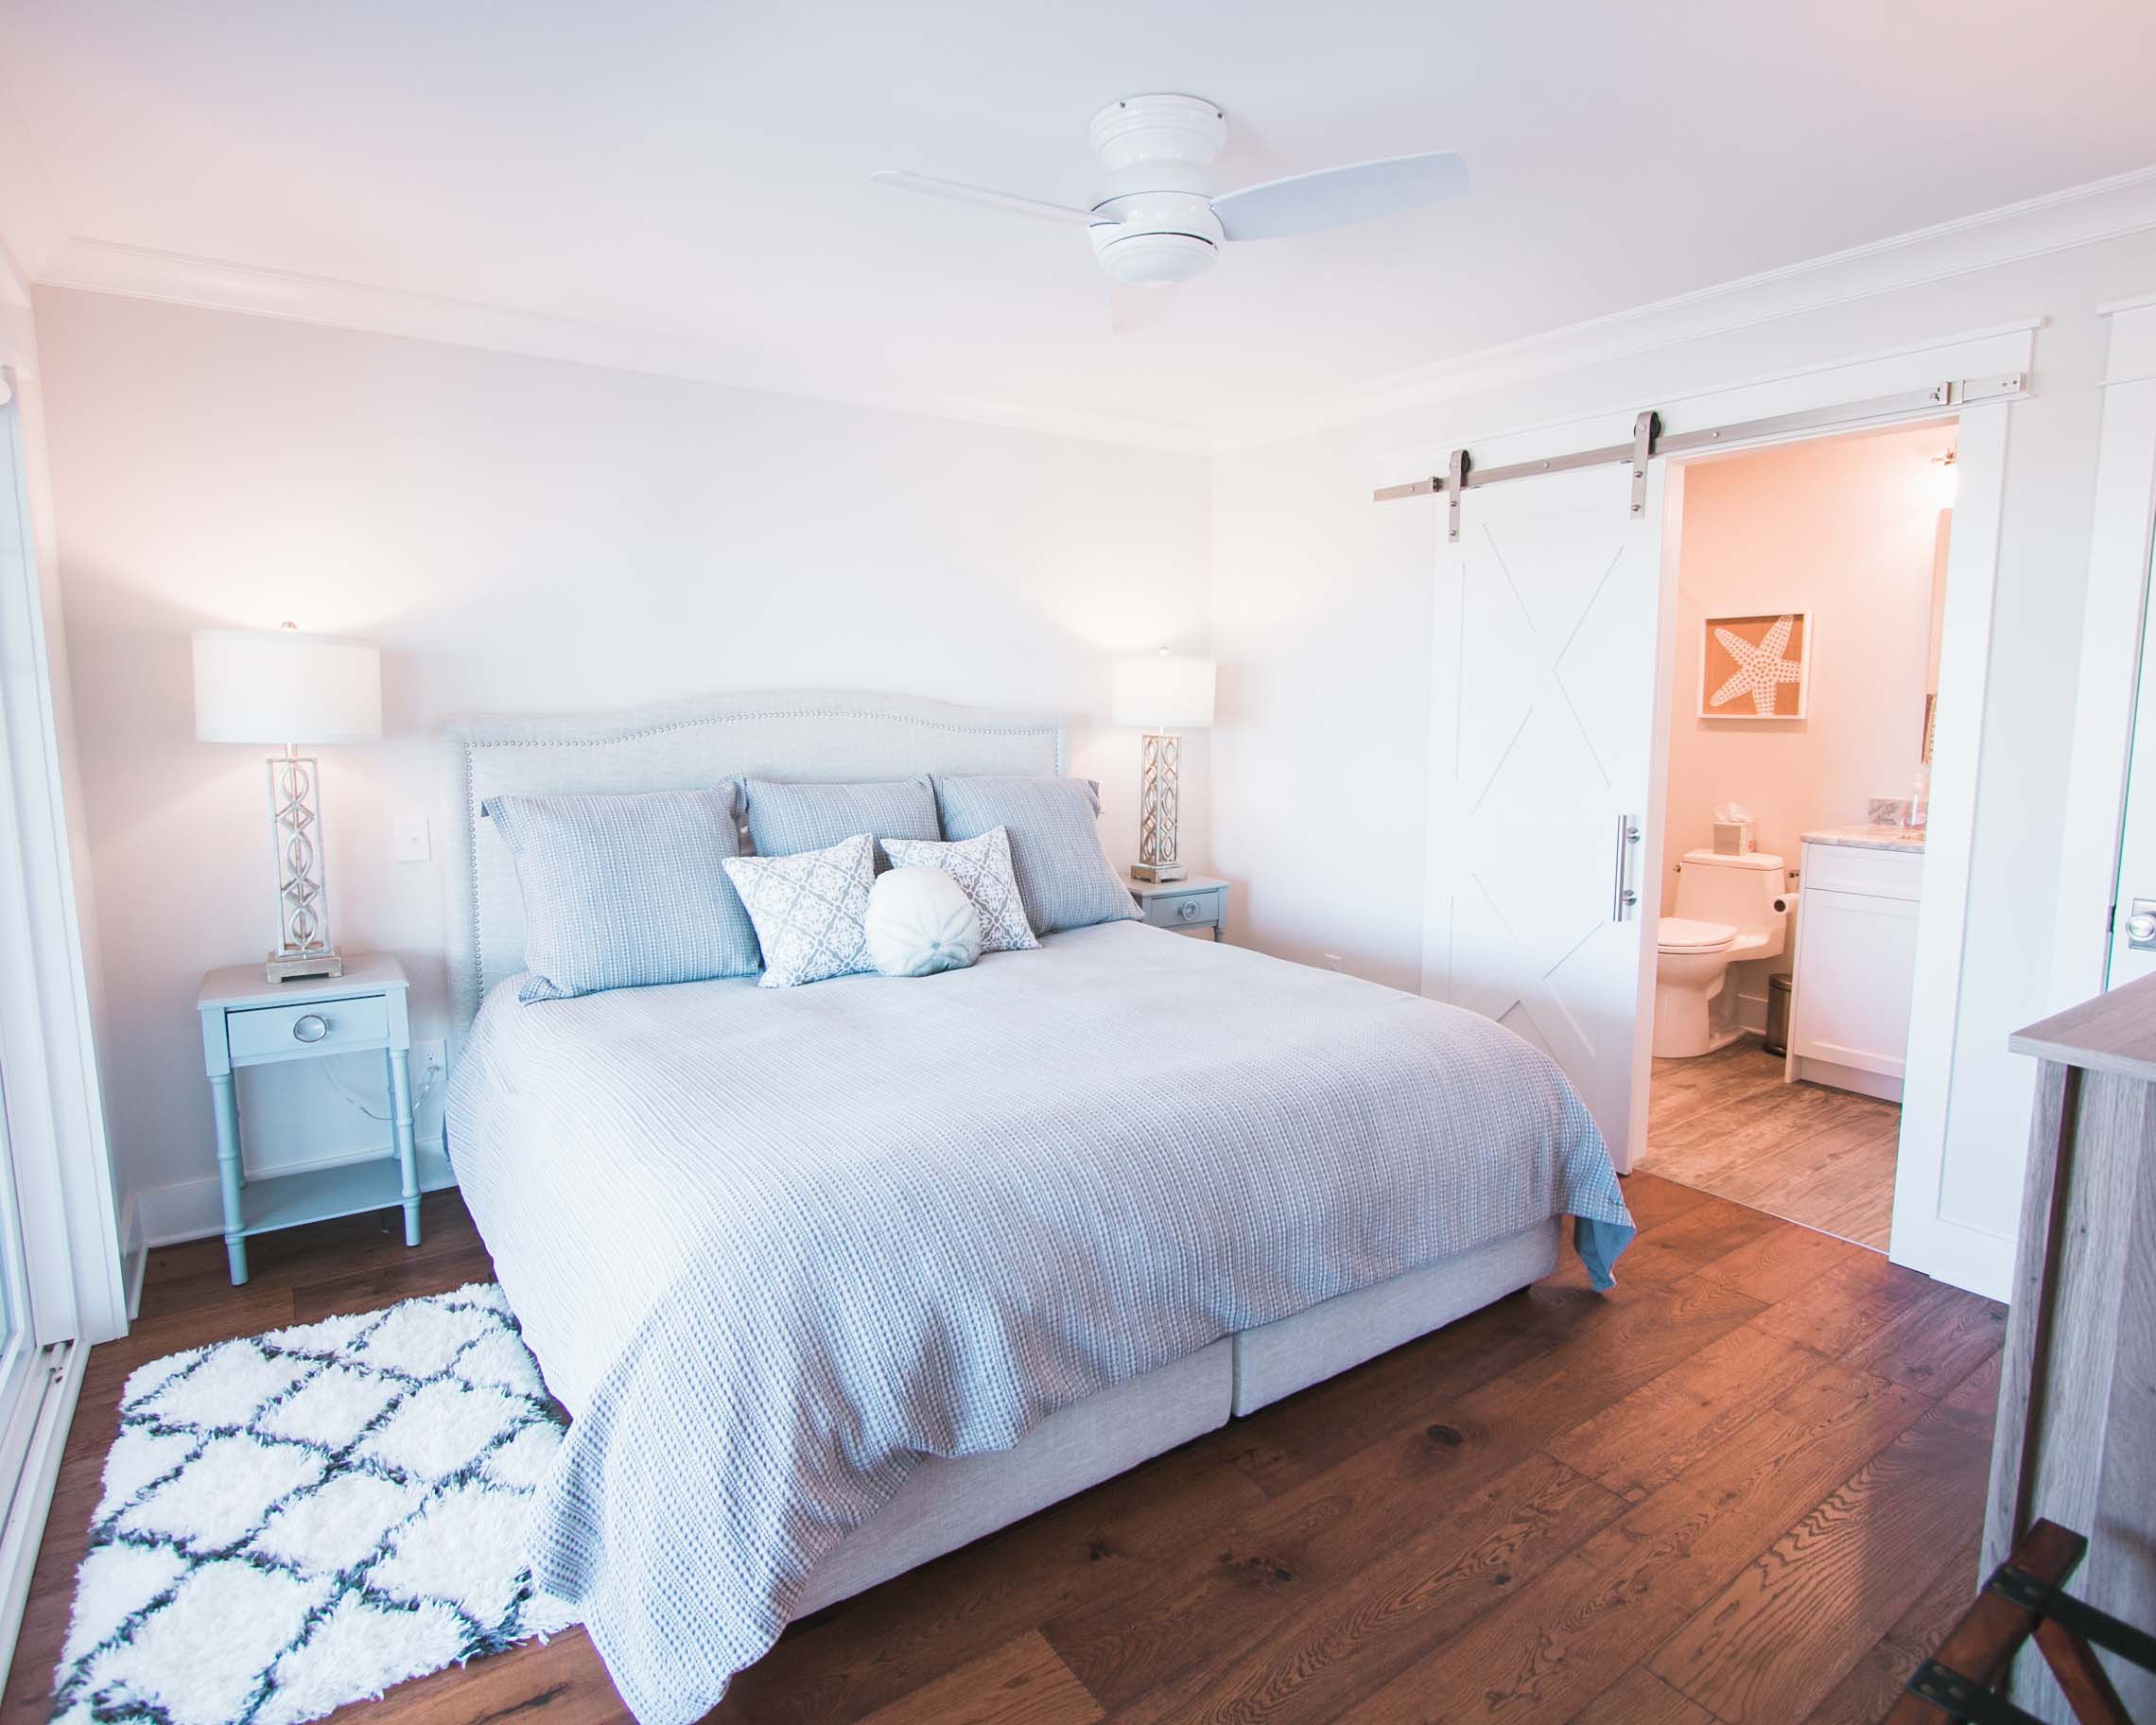 airy bedroom by ocean isle nc home builder